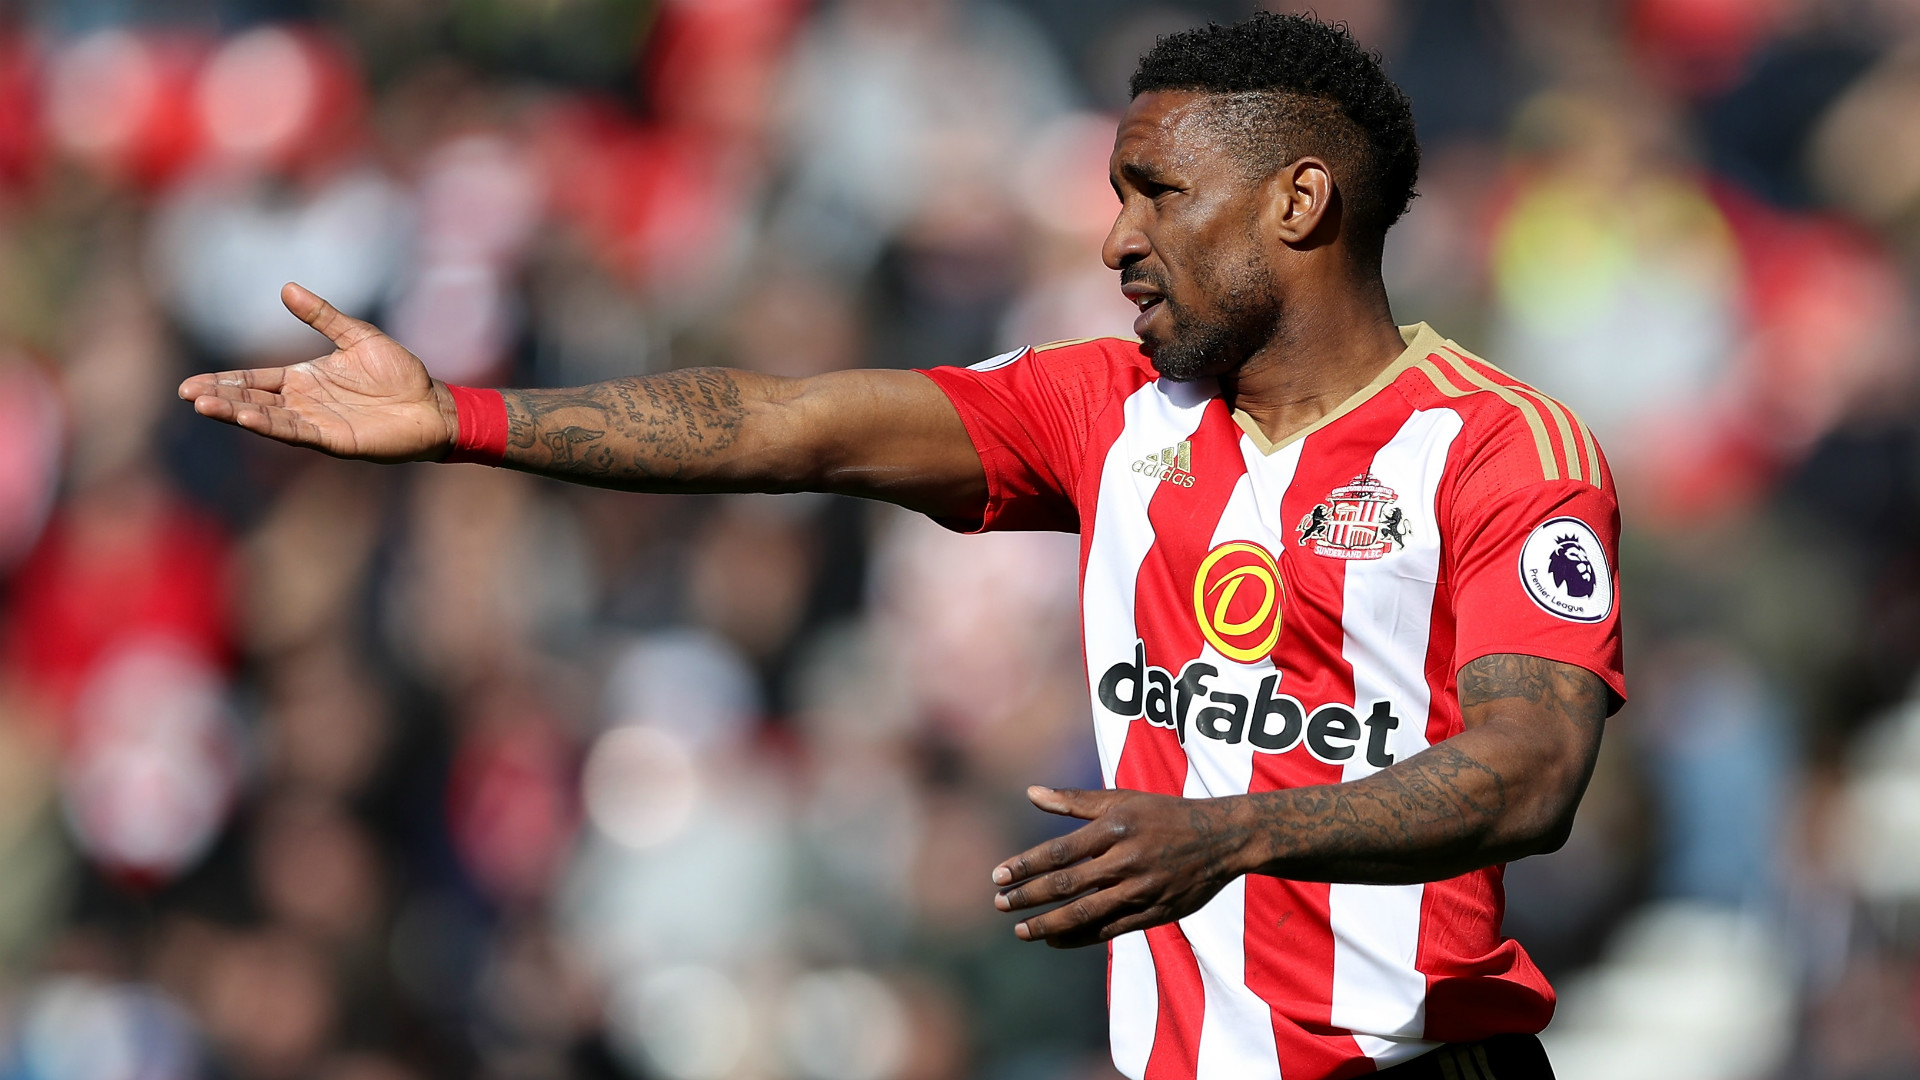 Middlesbrough and Sunderland 12/5 to draw Wednesday's Premier League battle